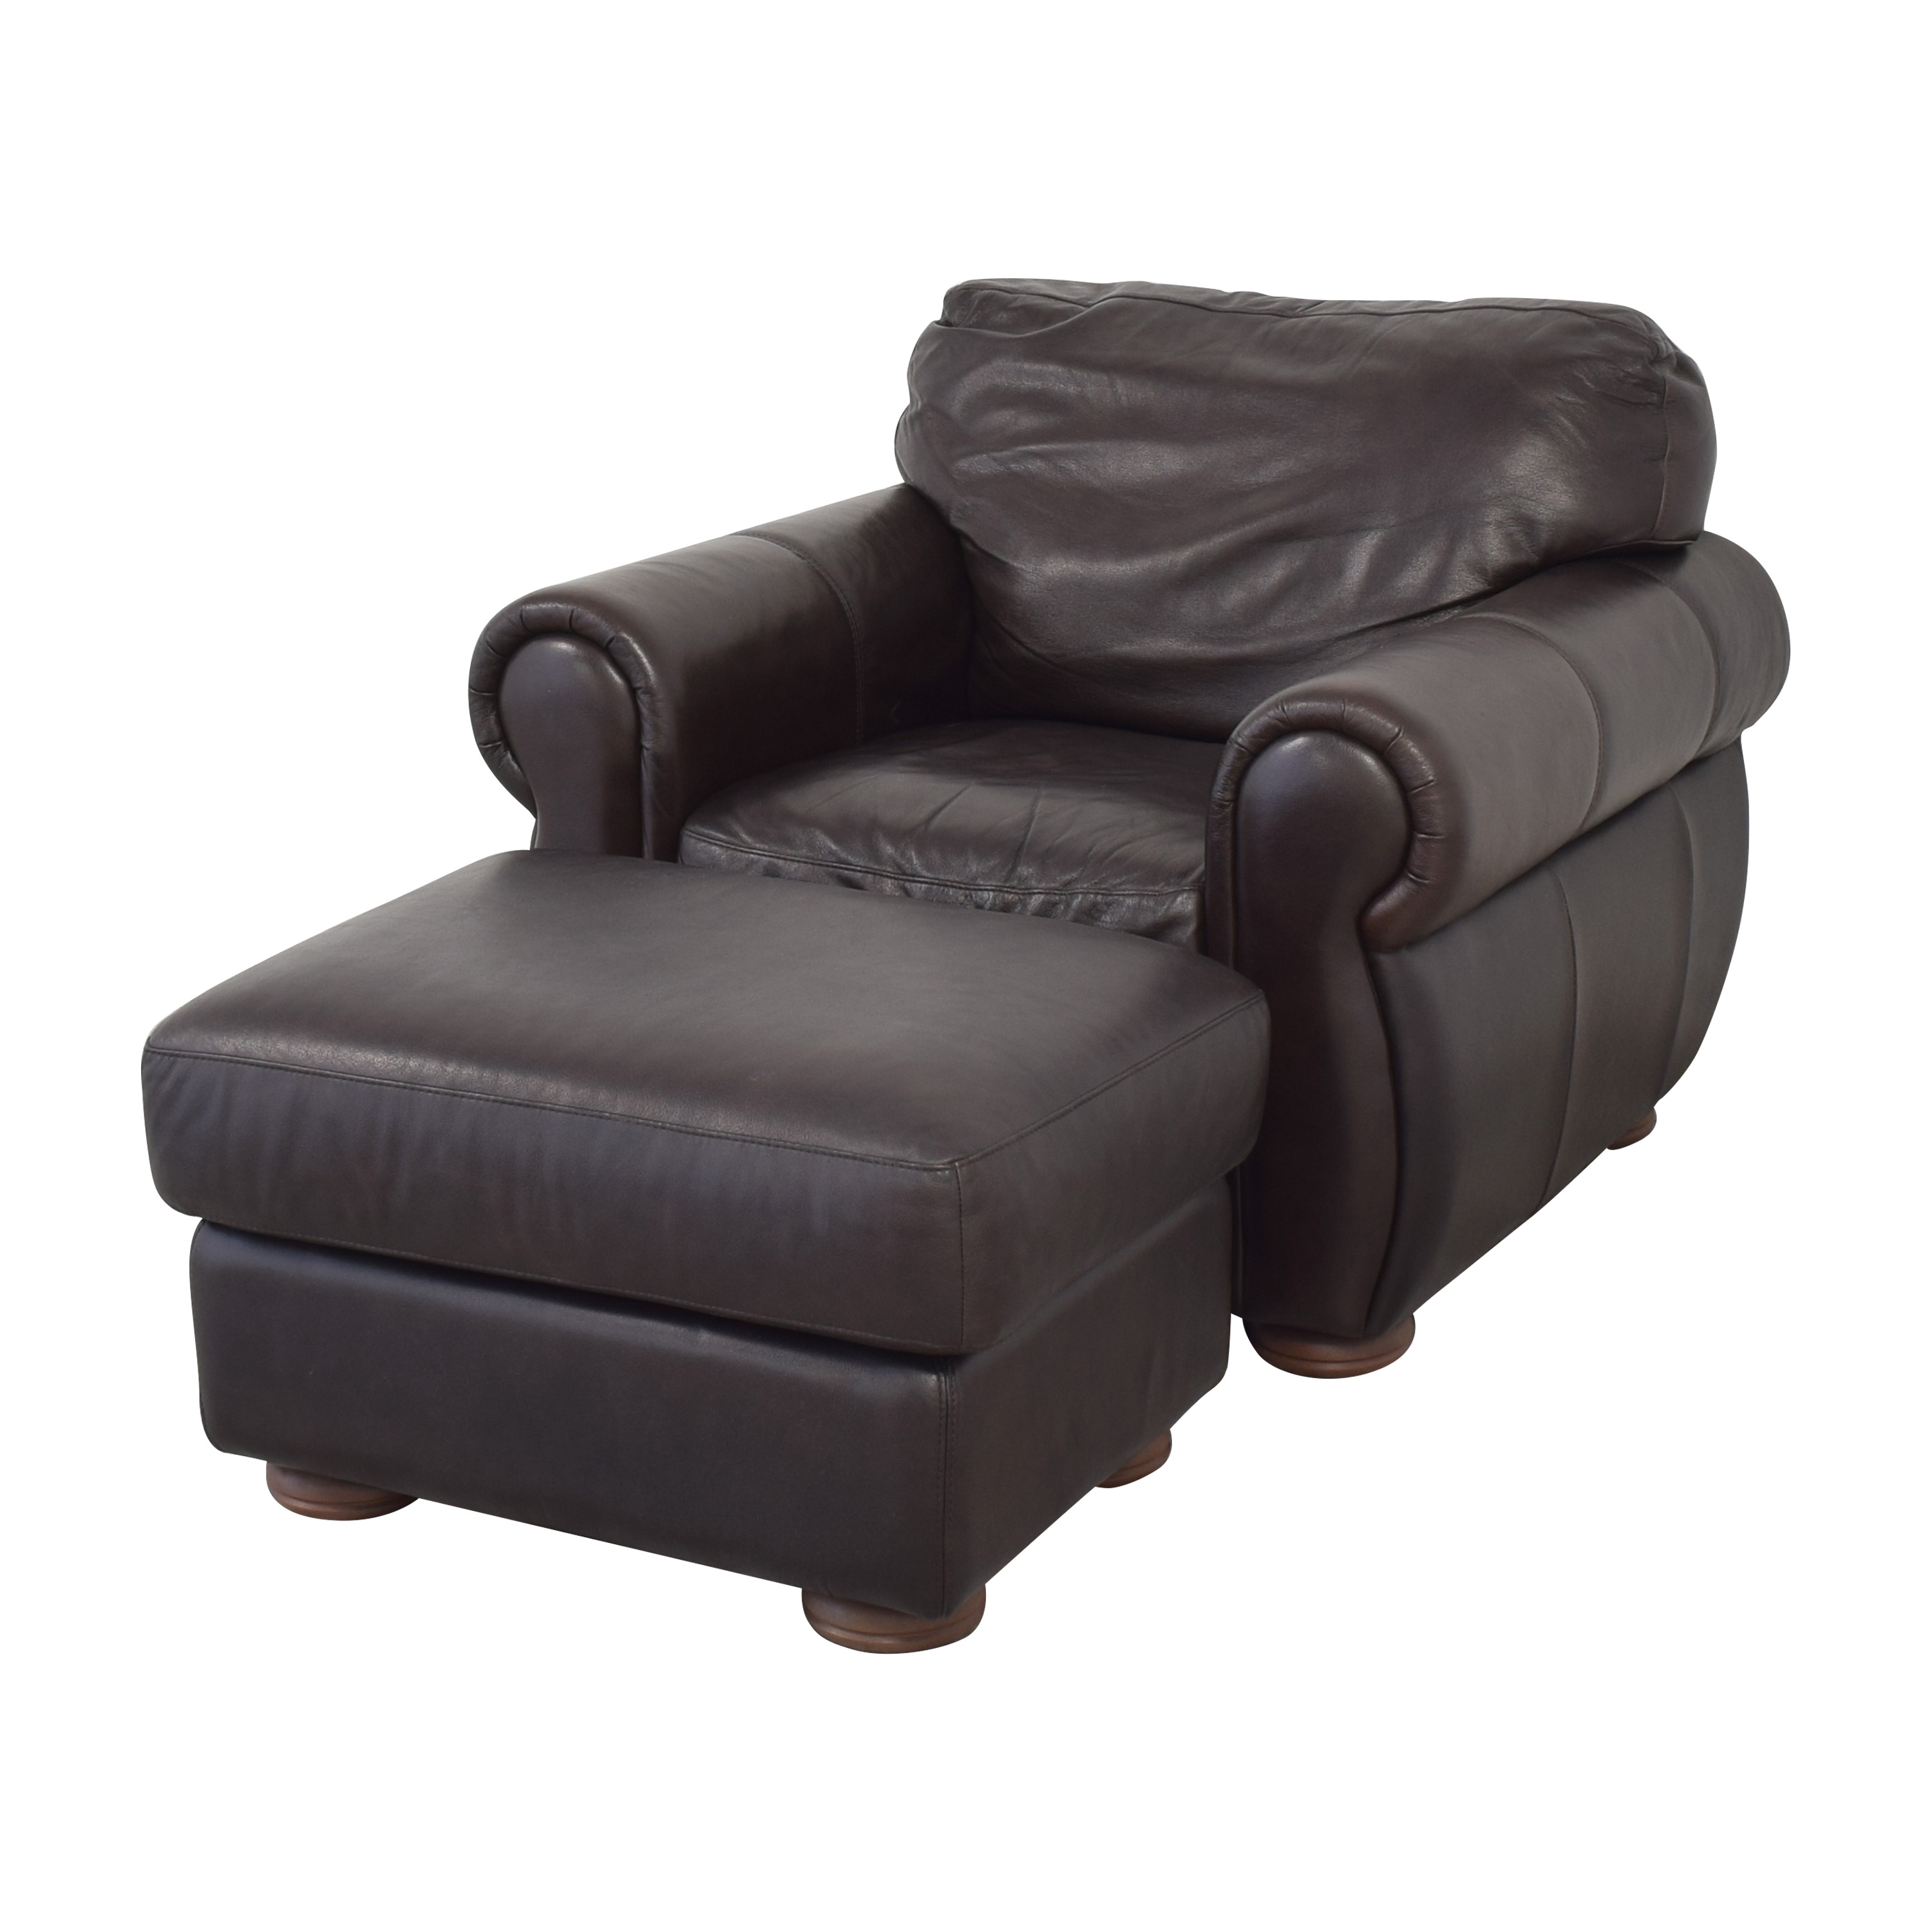 shop Raymour & Flanigan Marsala Chair with Ottoman Raymour & Flanigan Accent Chairs